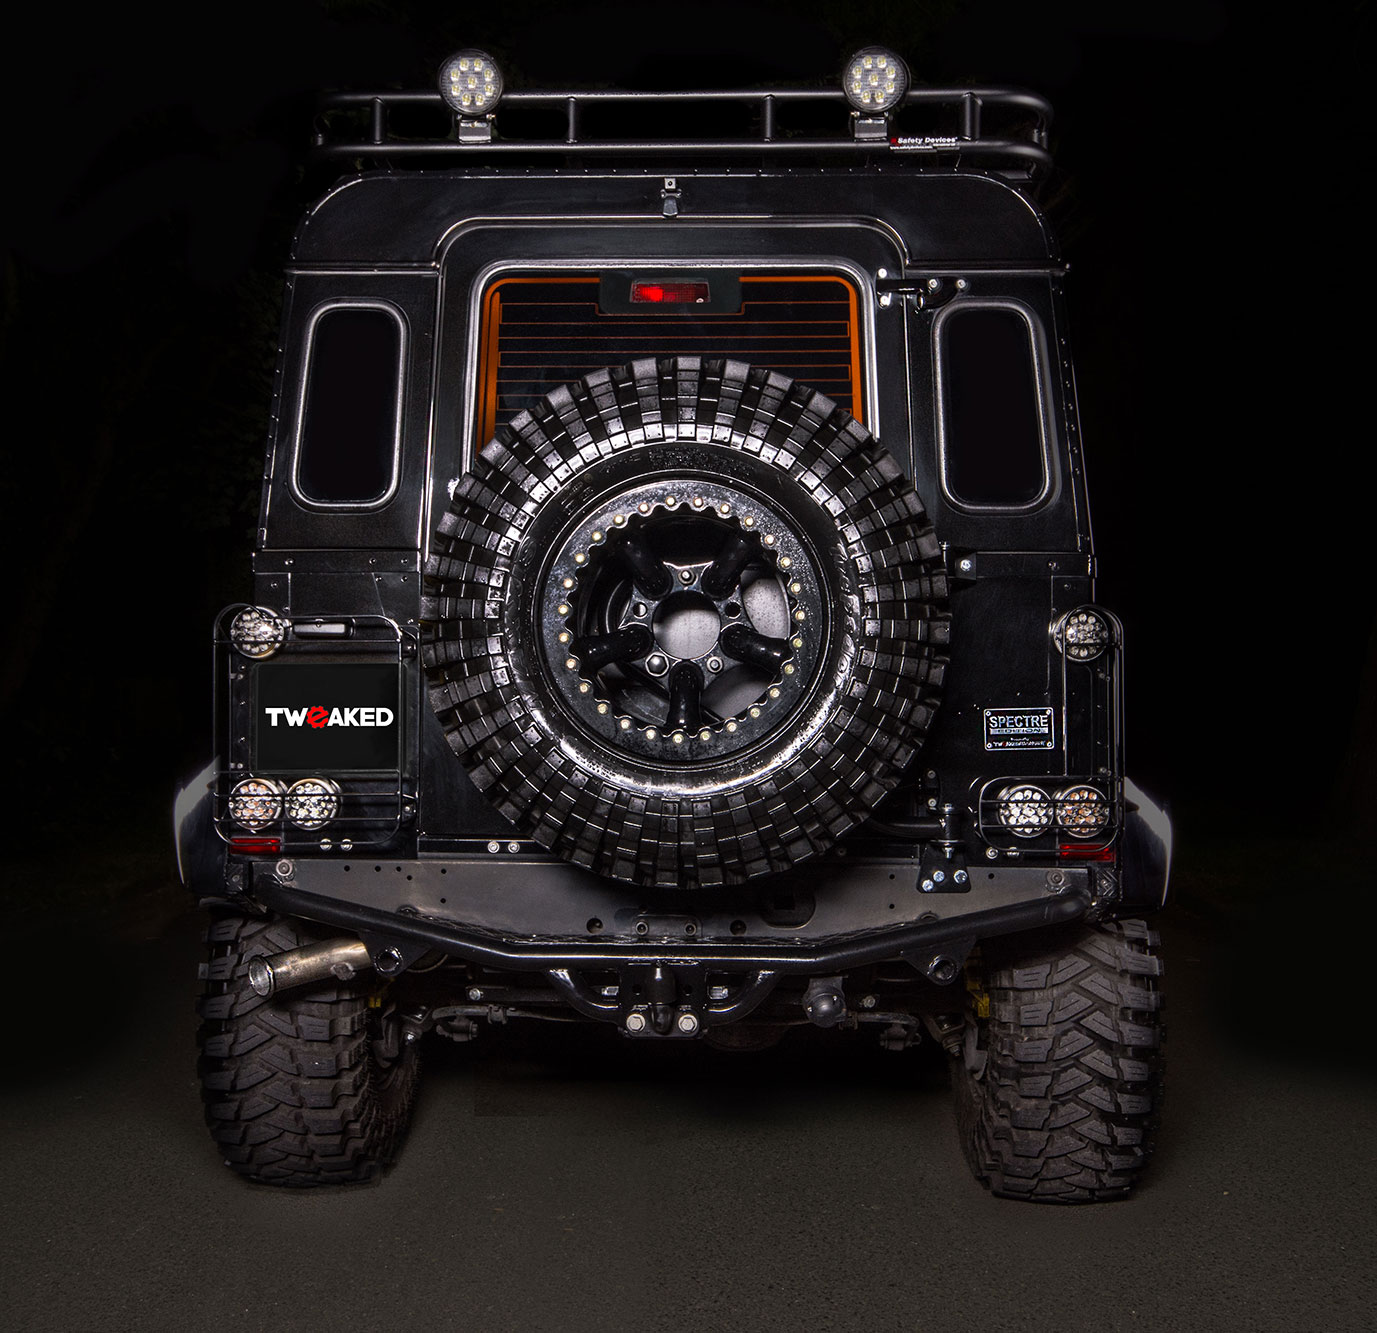 Land Rover Defender 90 110 130 Tweaked Spectre Edition Full